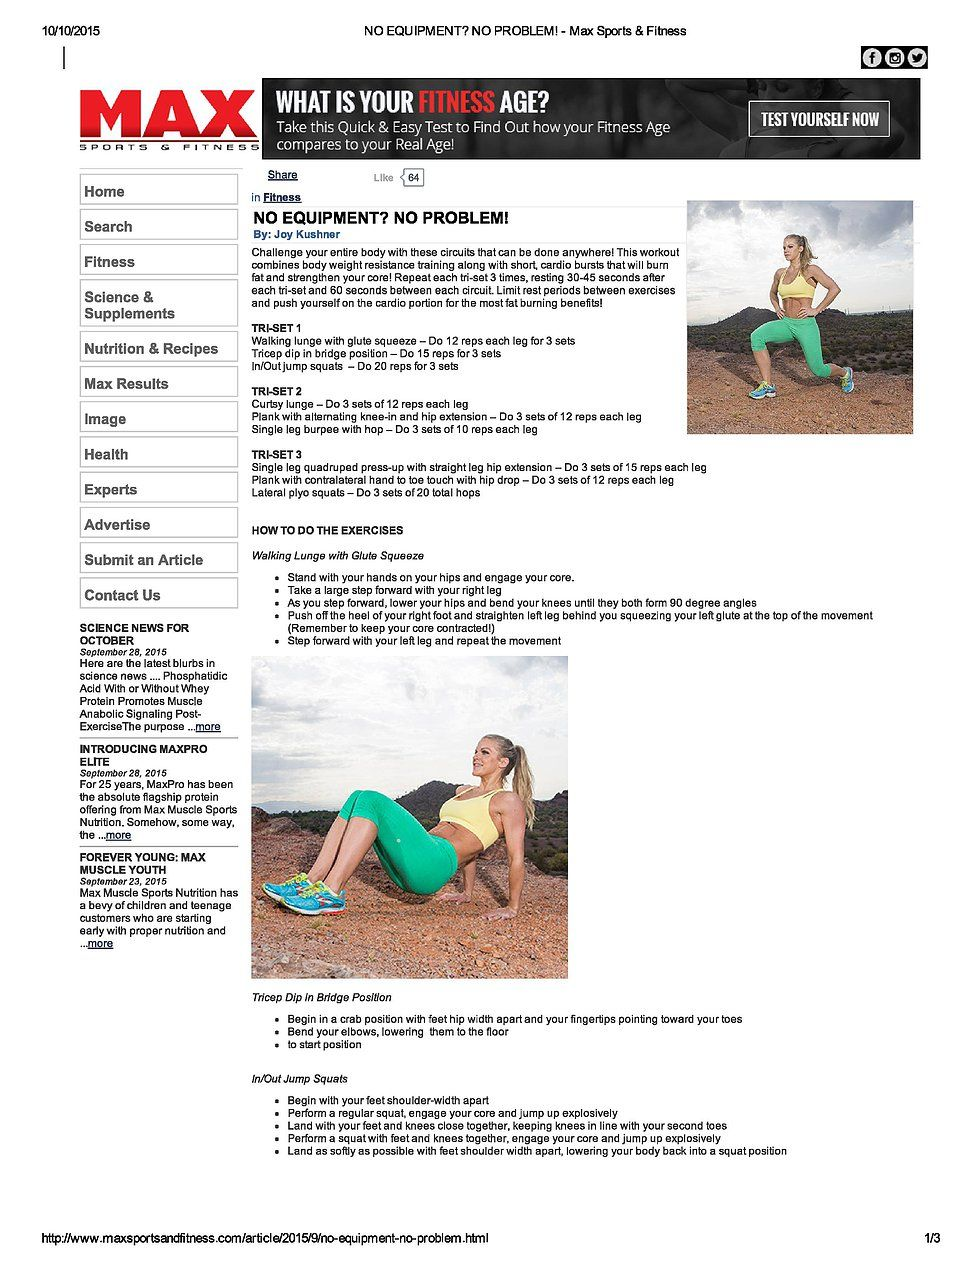 Pin by Joy Personal Training on JOY Published Work At